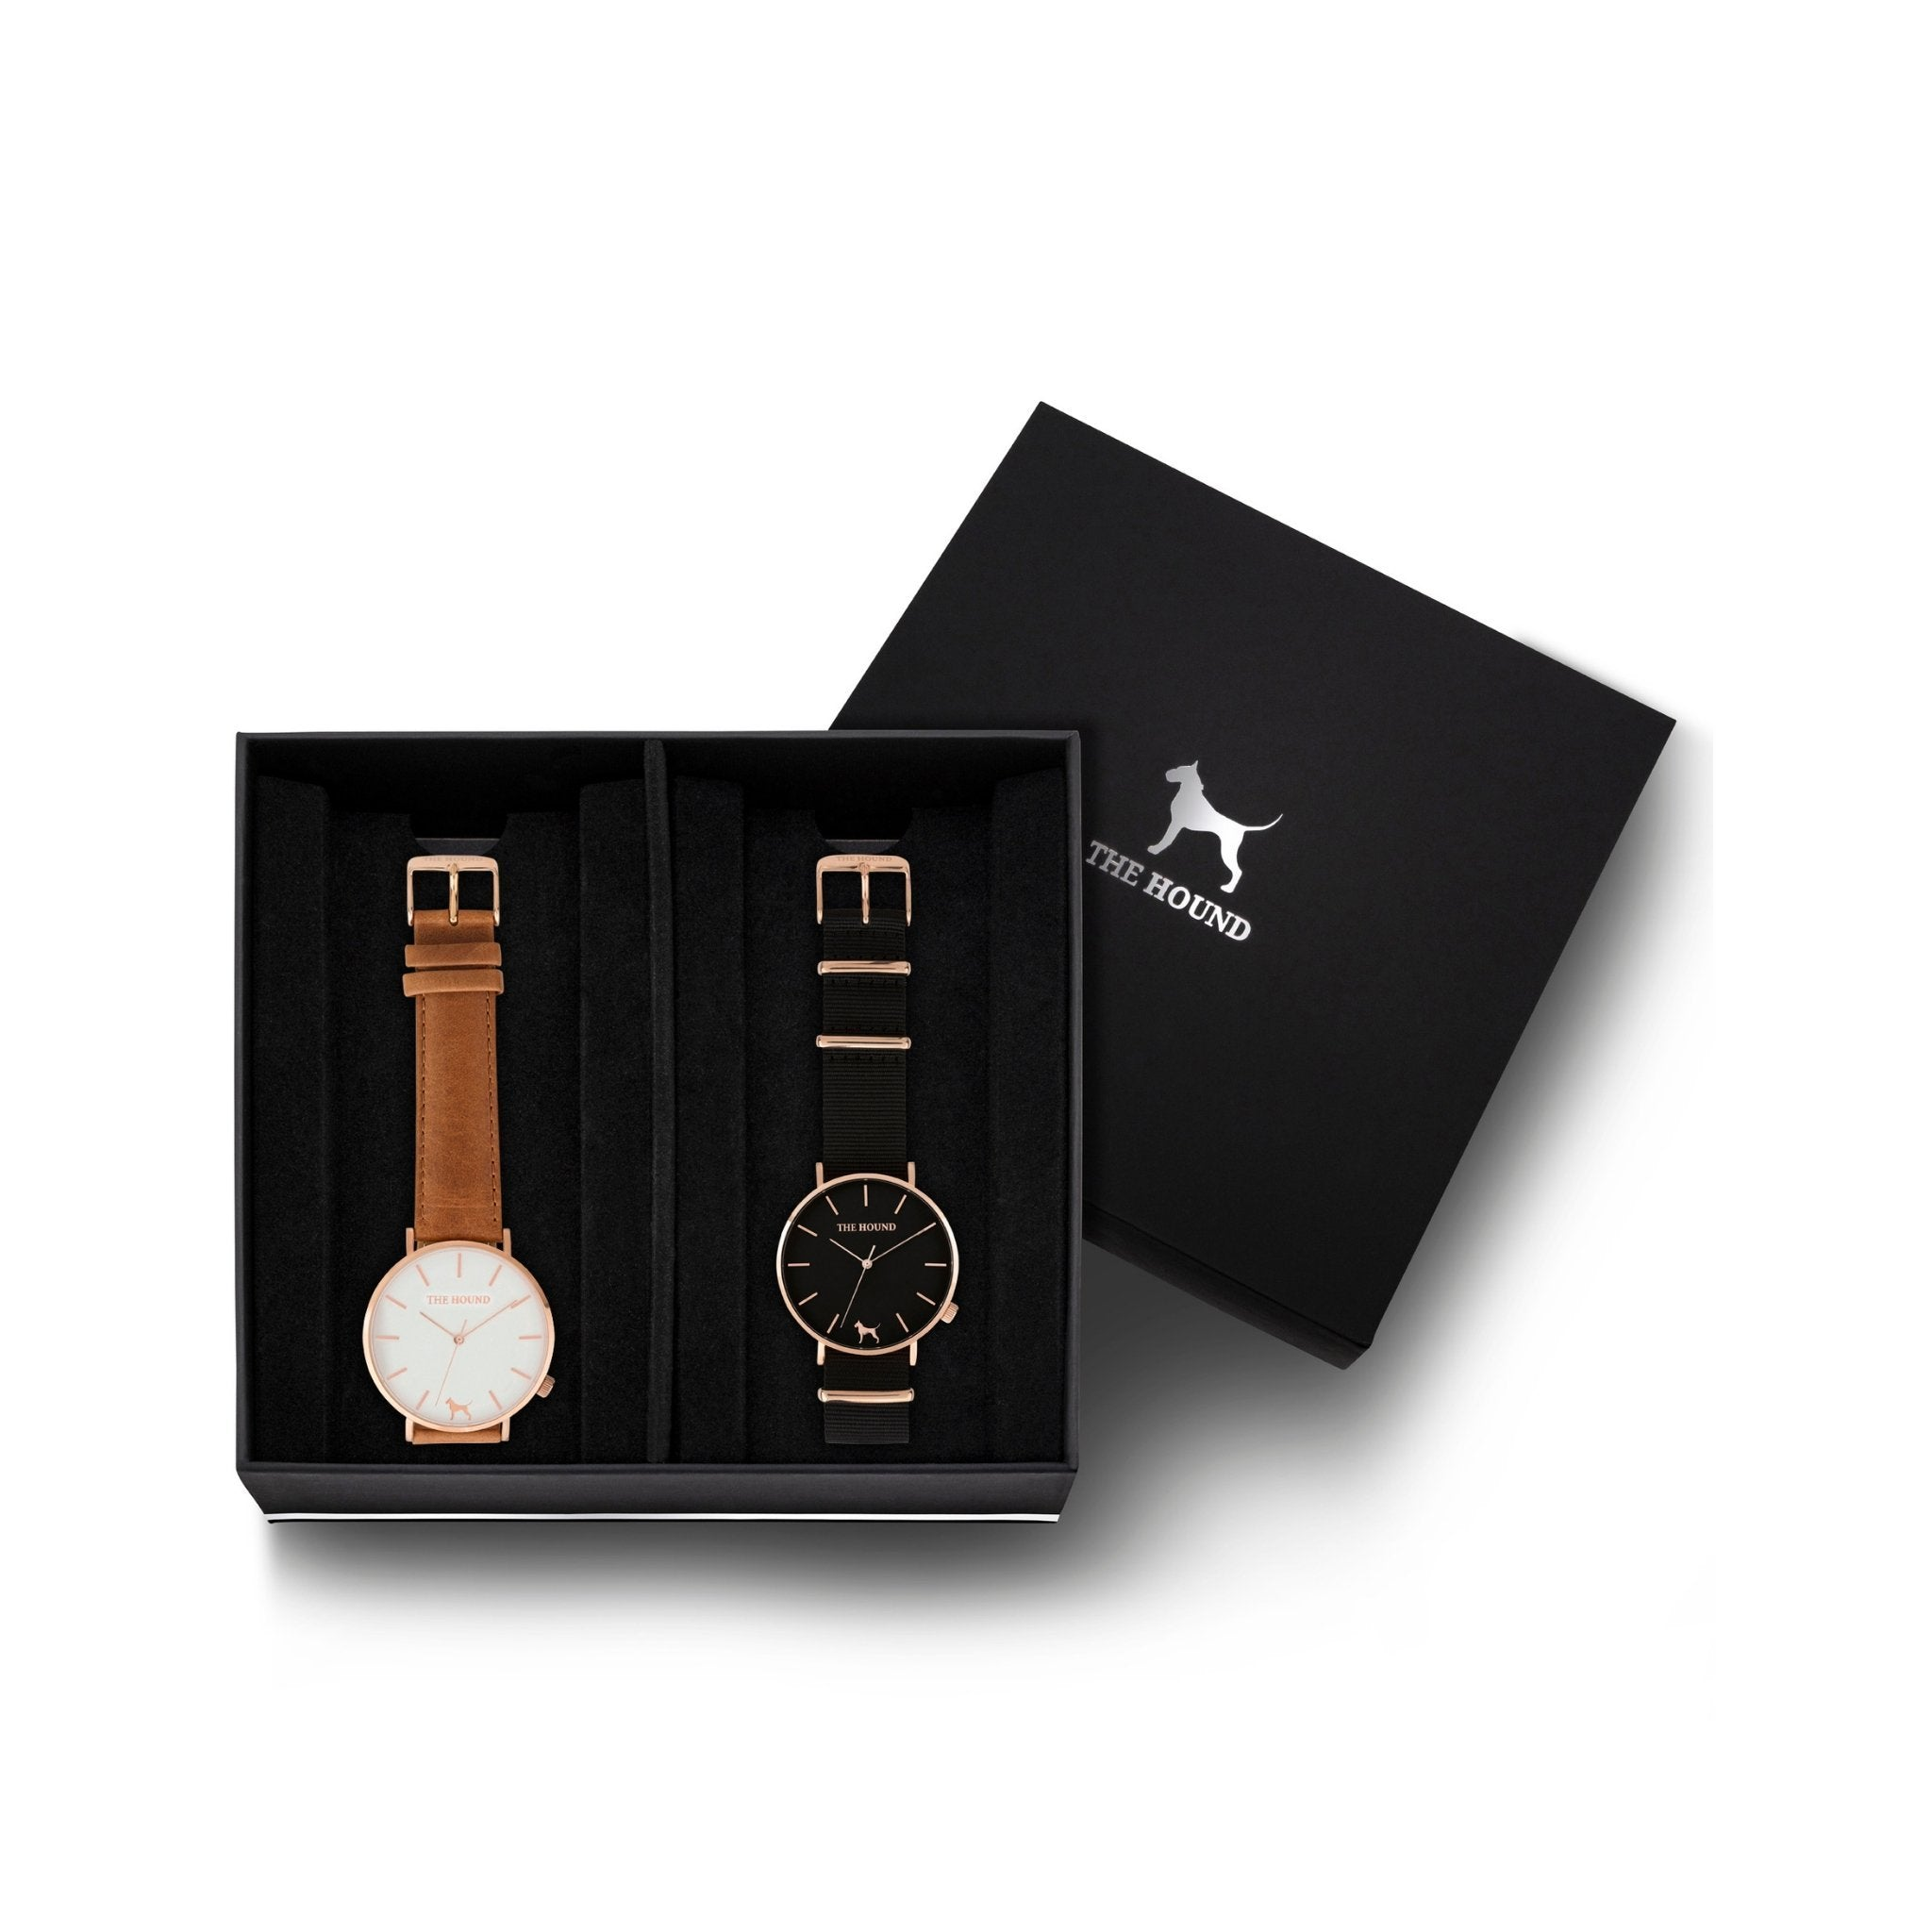 Custom gift set - Rose gold and white watch with stitched tan genuine leather band and a rose gold and black watch with black nato leather band